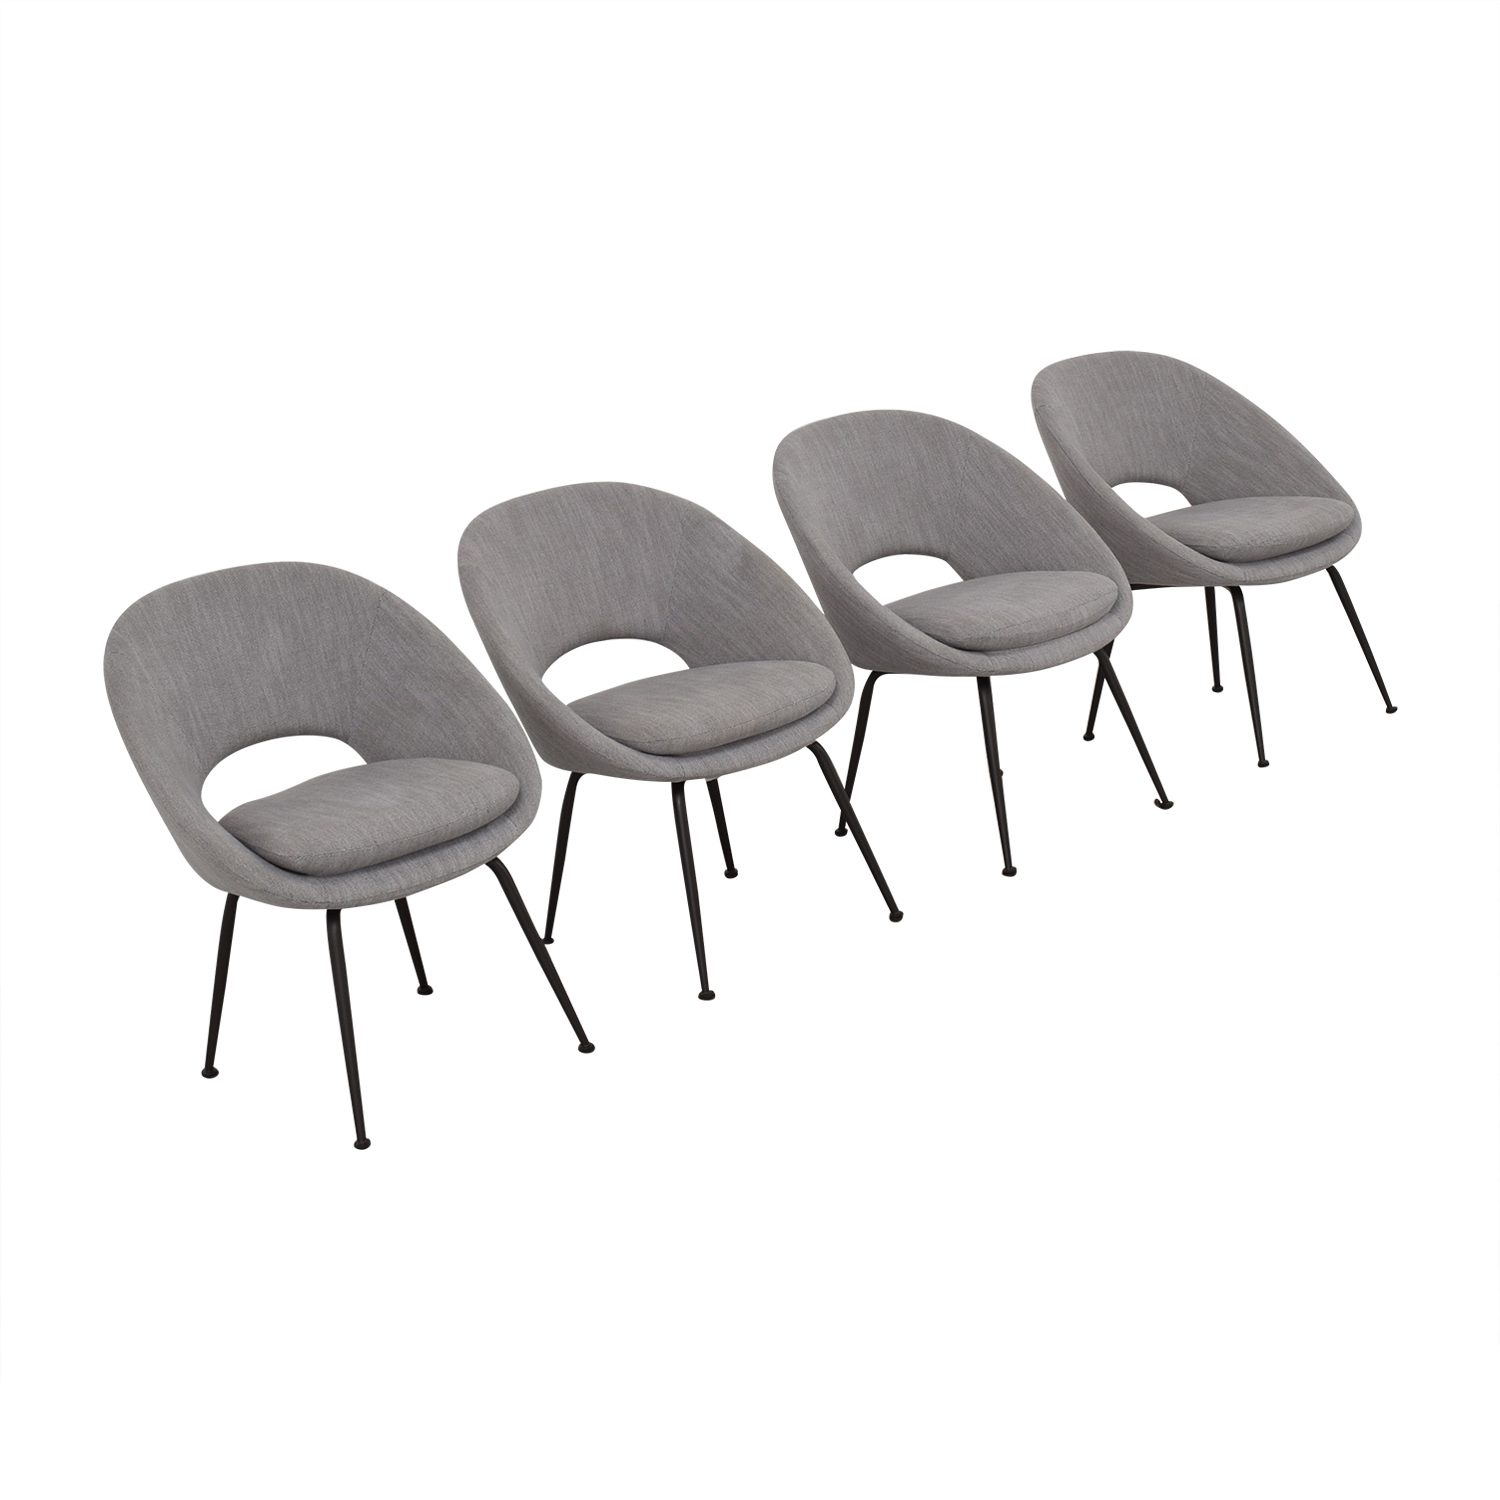 West Elm West Elm Orb Upholstered Dining Chairs used